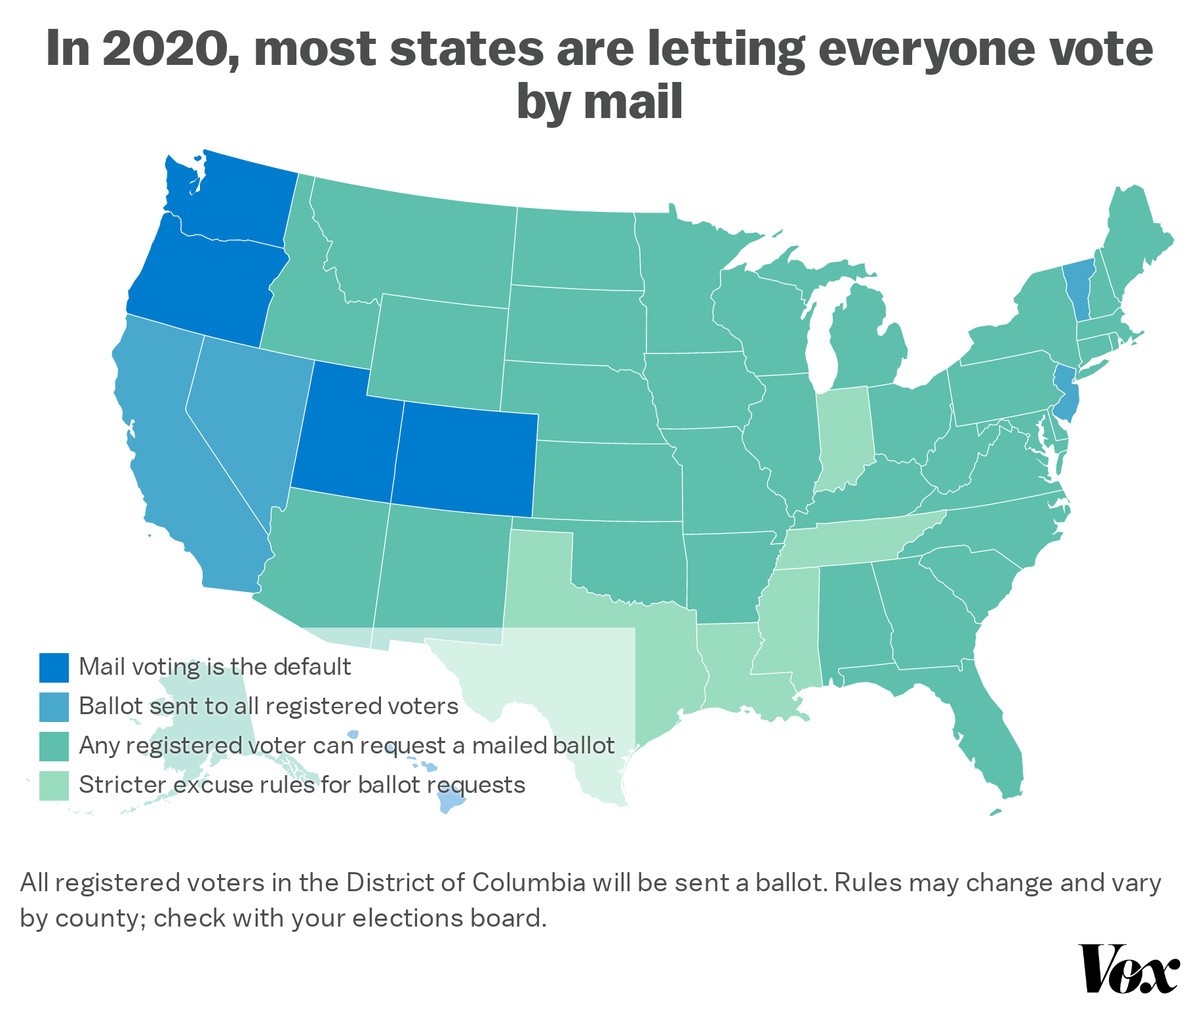 """Map: """"In 2020, most states are letting everyone vote by mail"""""""